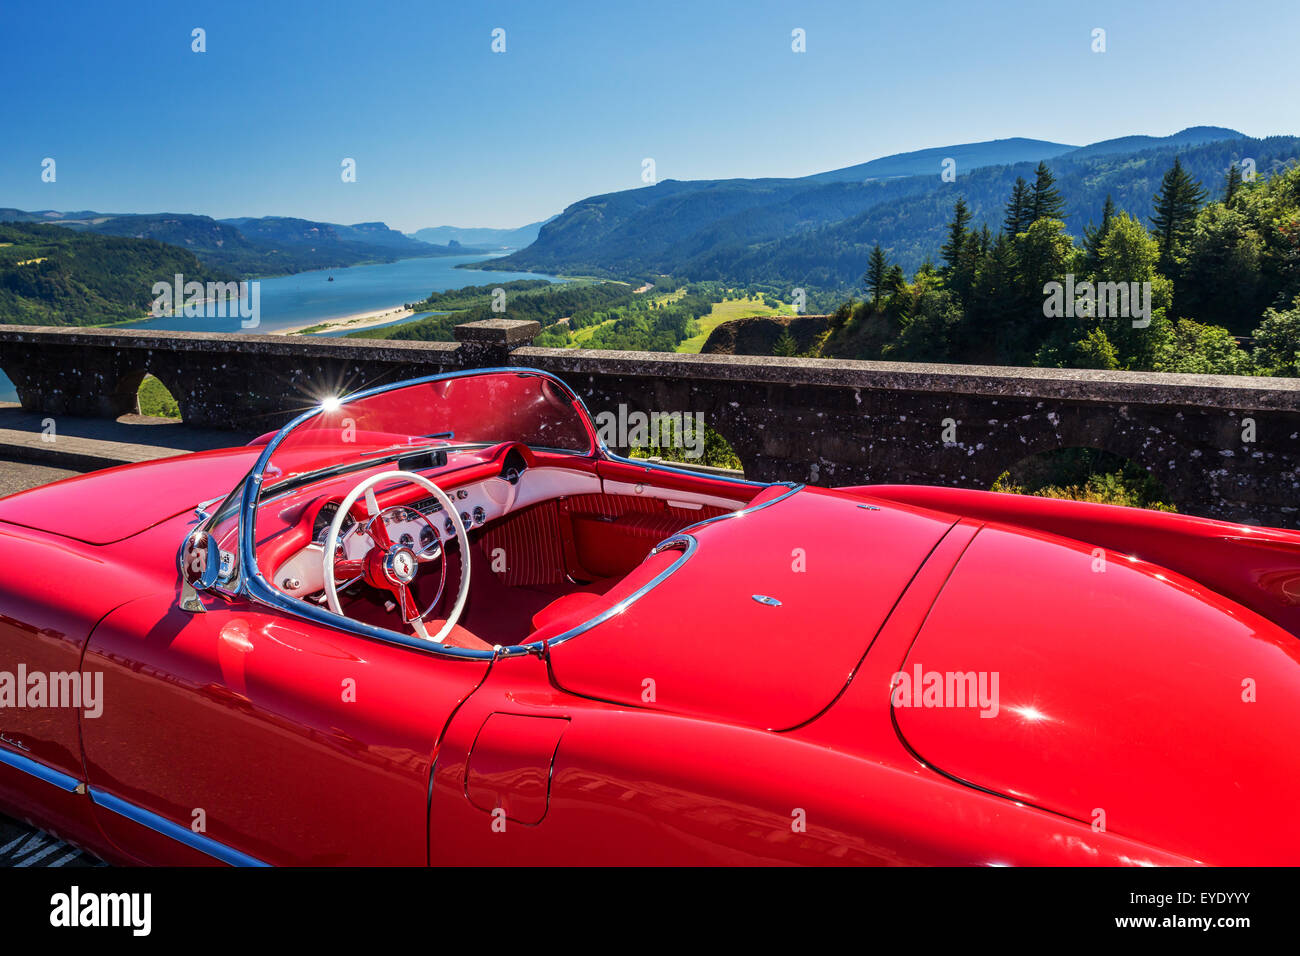 Red Cadillac at Crown Point viewpoint, Columbia Gorge, Oregon, USA - Stock Image